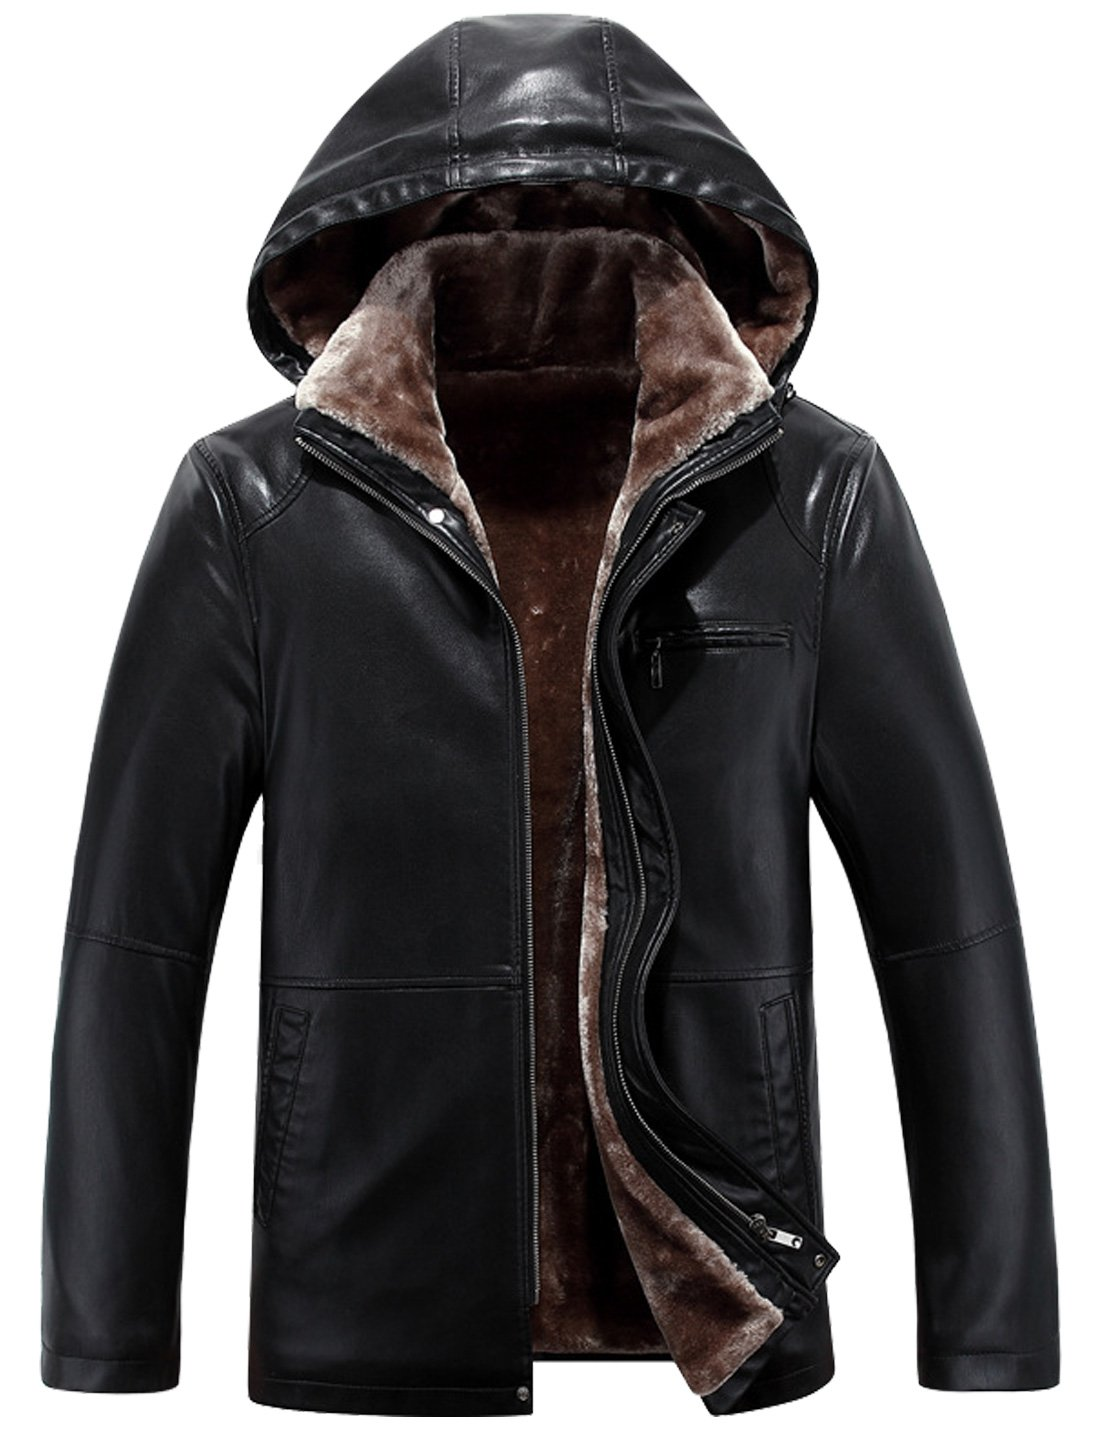 Yeokou Men's Winter Warm Leather Coat Real Fur Hooded Leather Jacket Black112 M by Yeokou